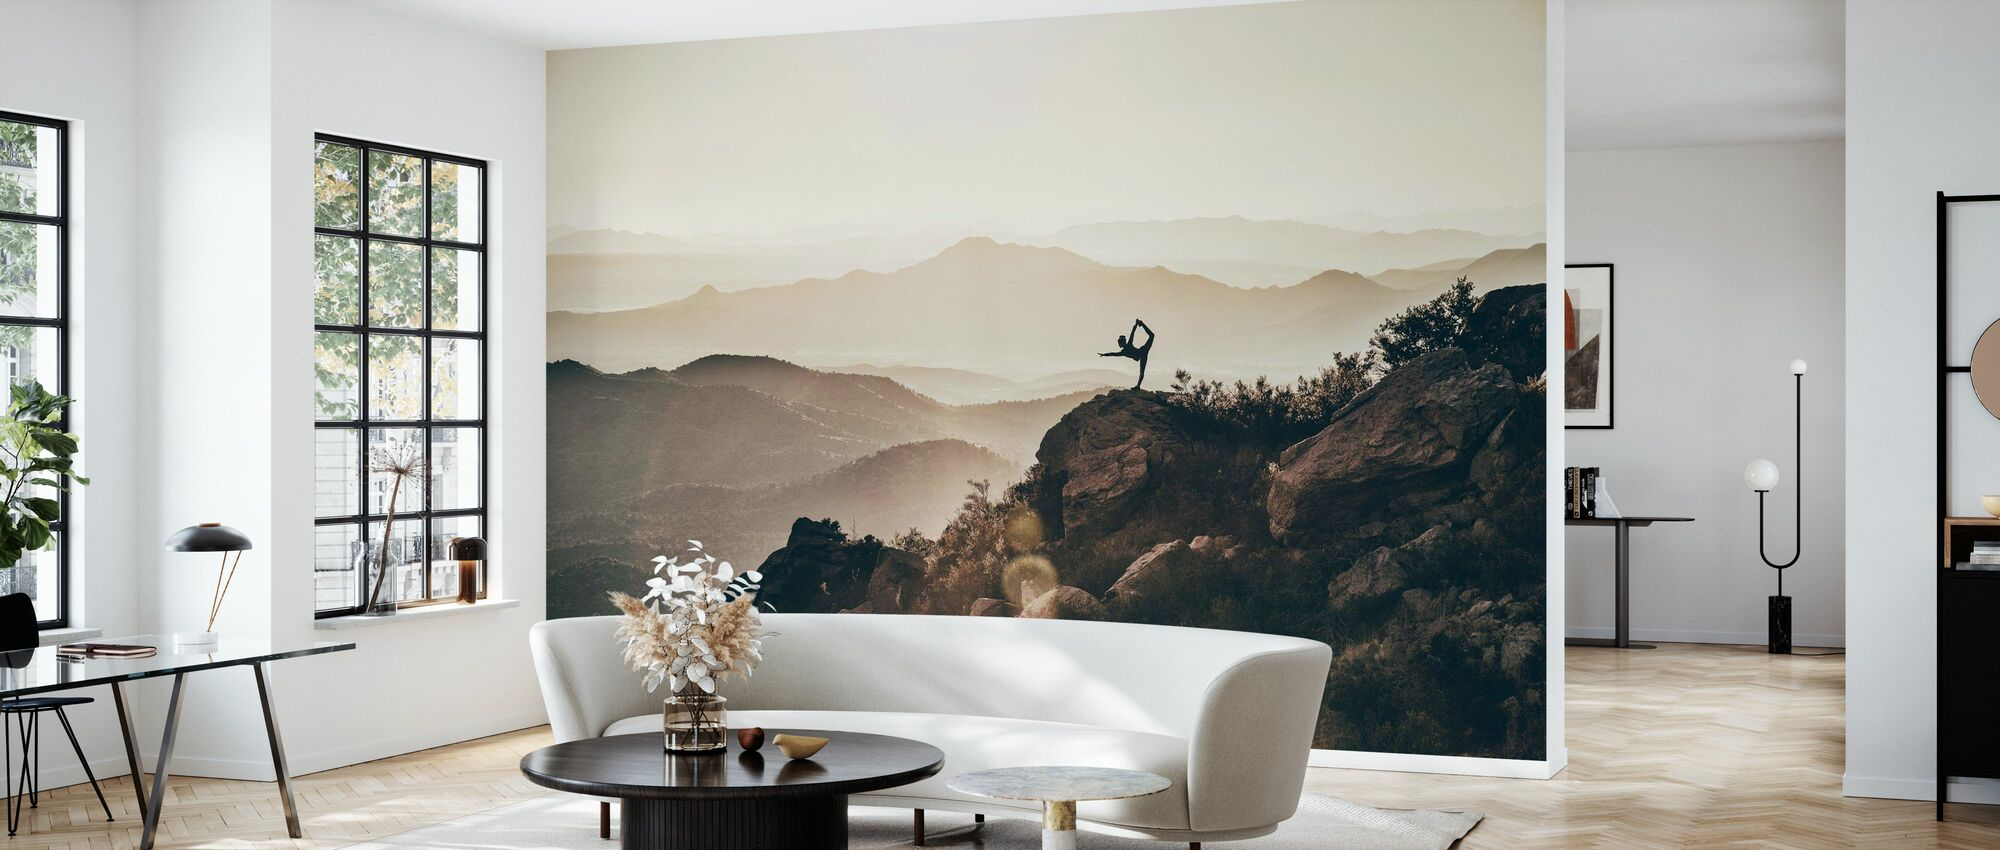 Woman on Rocky Mountains - Wallpaper - Living Room